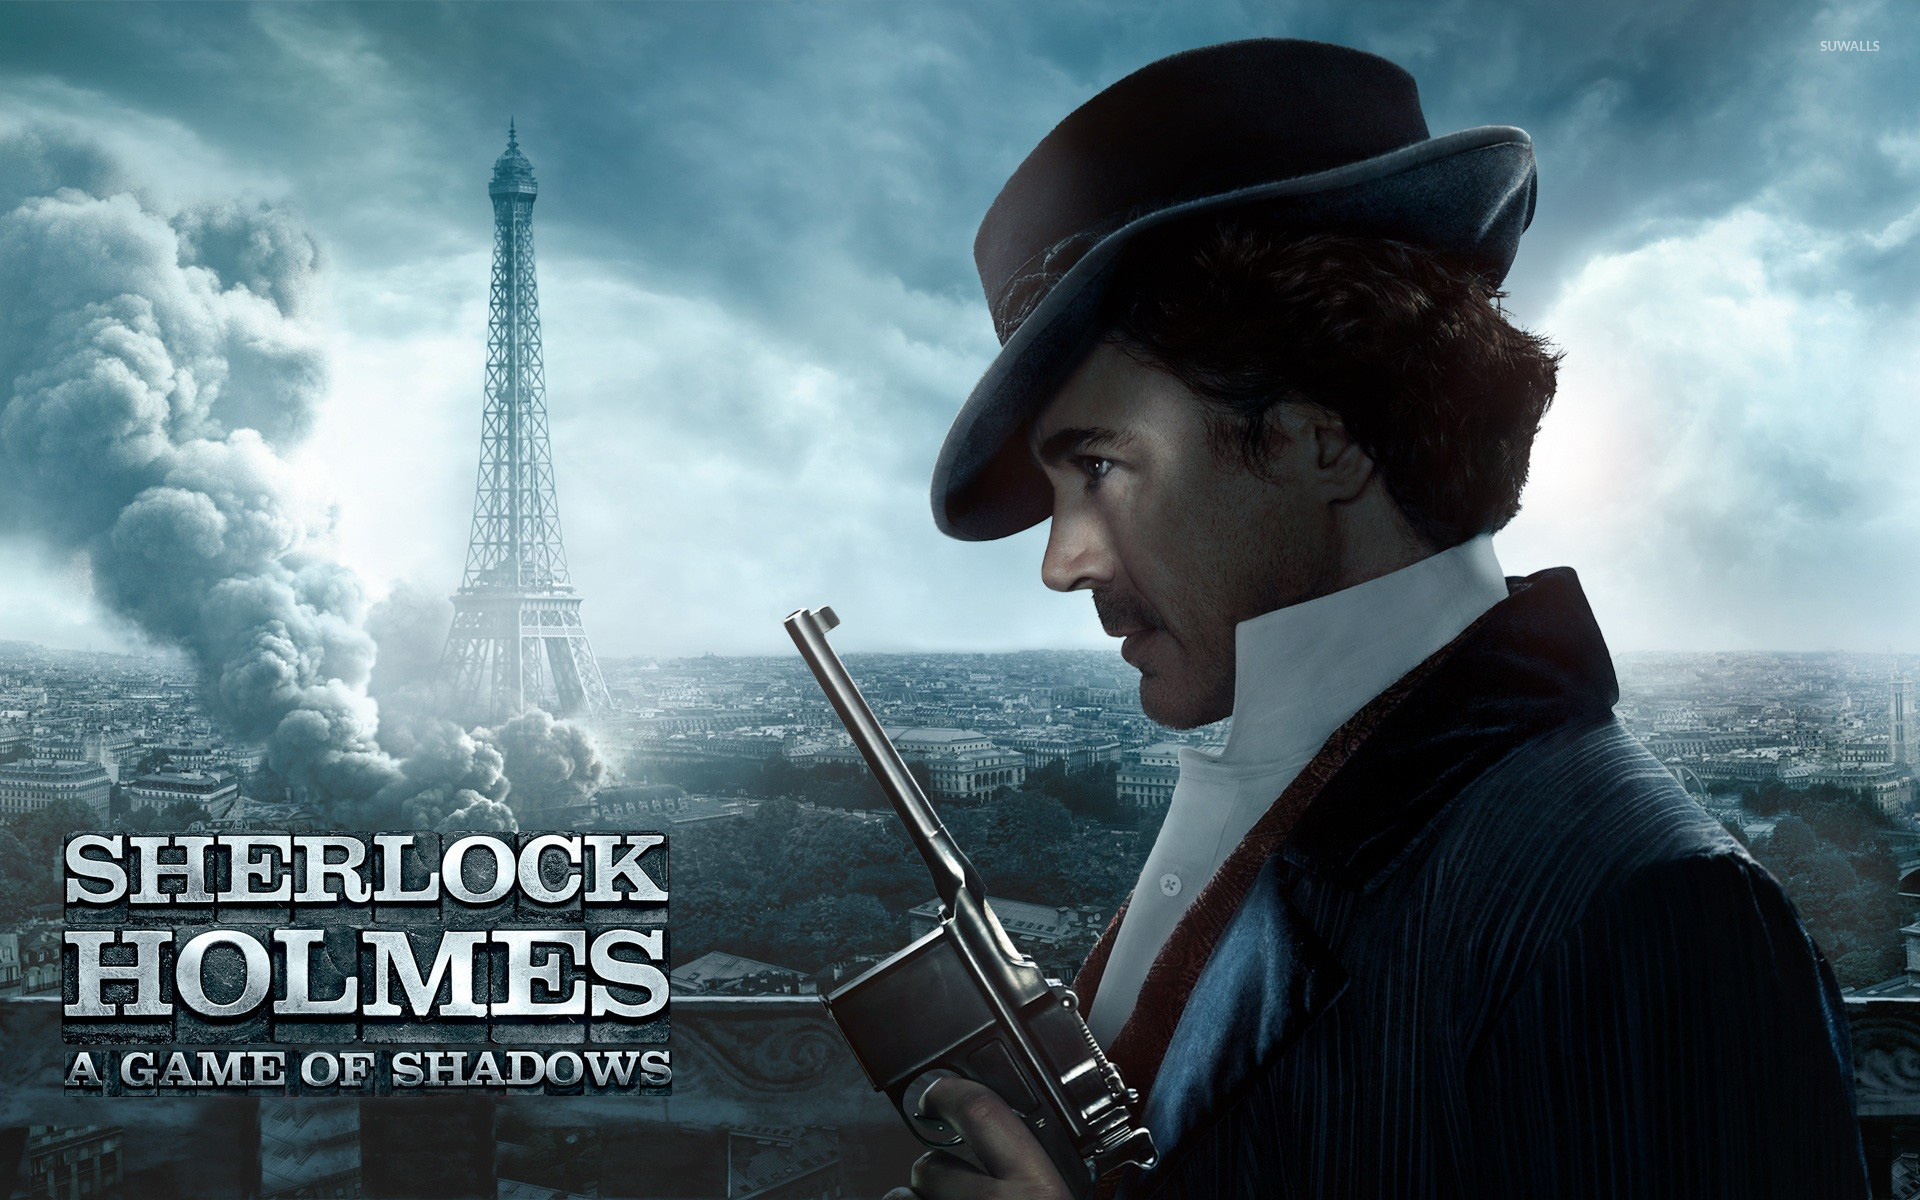 sherlock holmes: a game of shadows film reveiw essay Guy ritchie's new film is a visceral, action-packed extravaganza davina  quinlivan enjoys the ride.